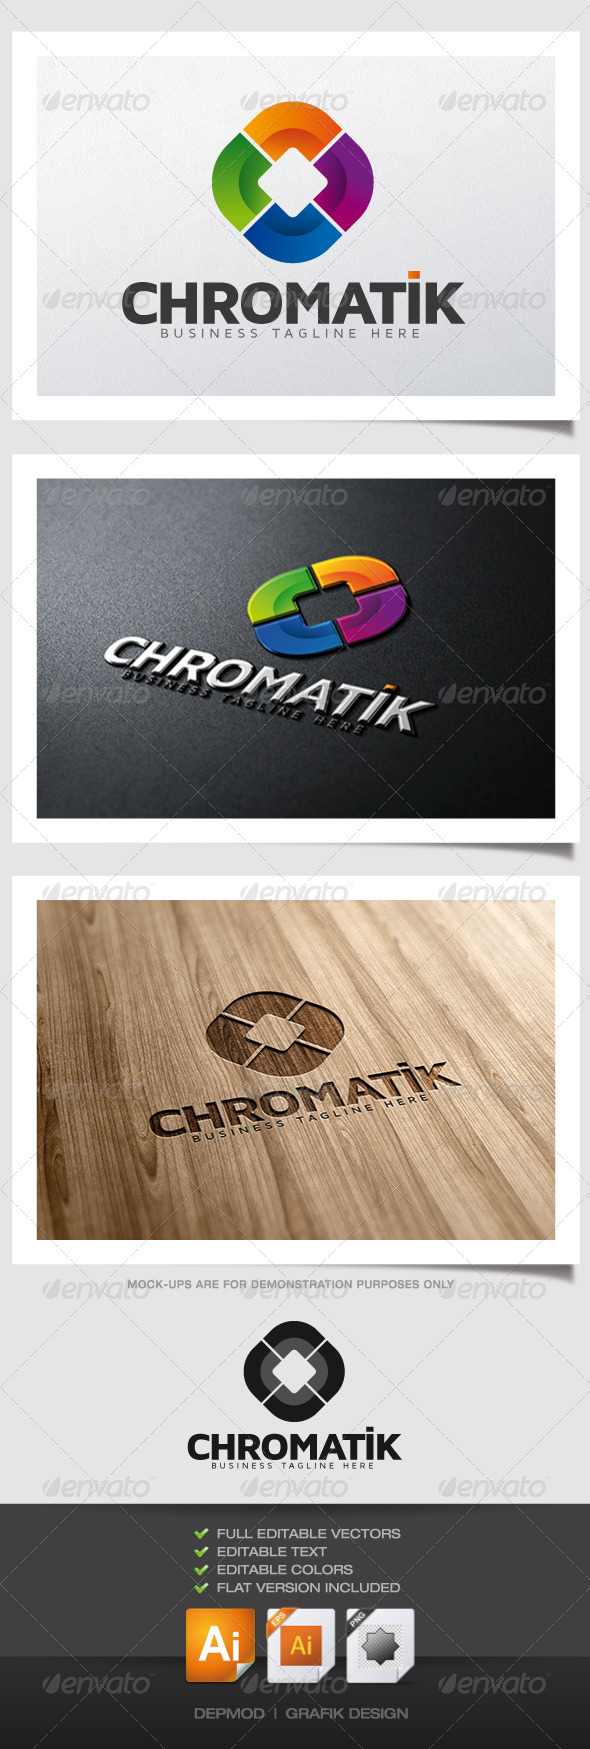 GraphicRiver Chromatik Logo 6252204